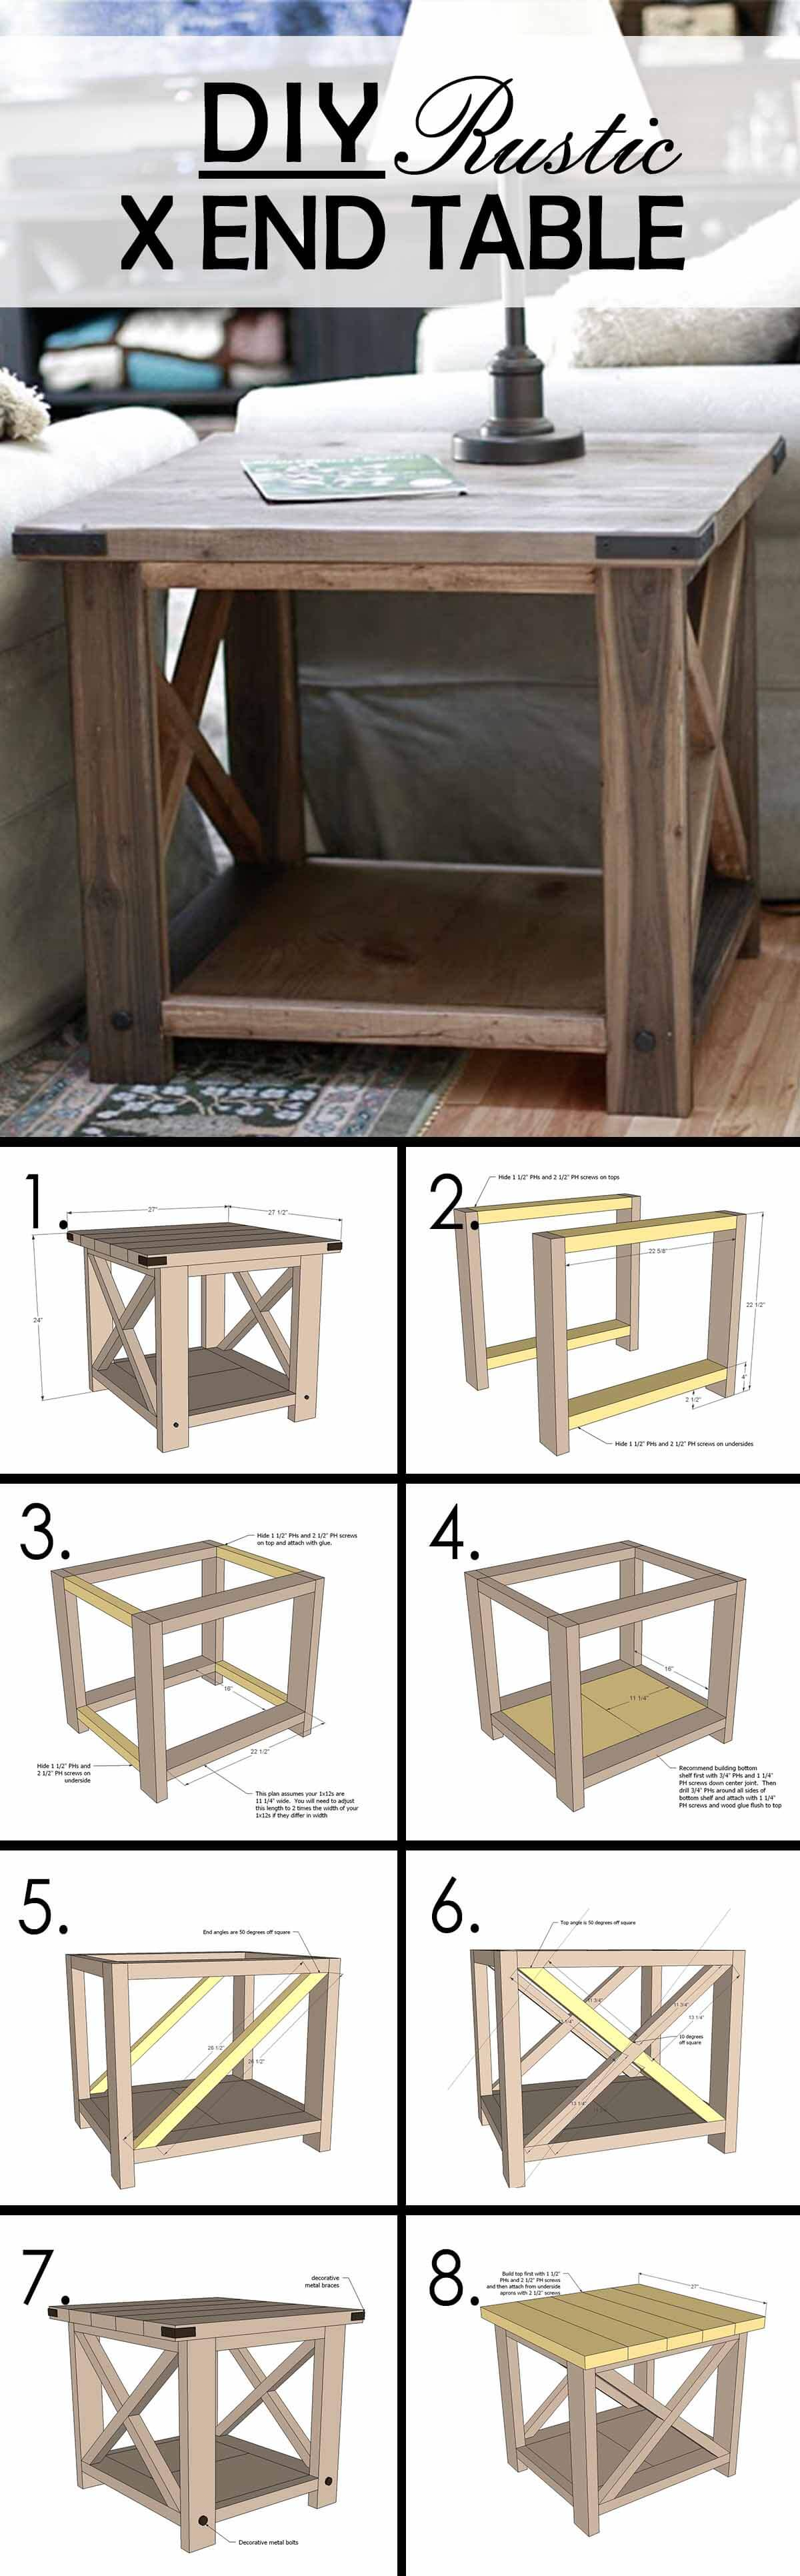 best diy farmhouse coffee table ideas and designs for homebnc wood cube accent build your own rustic end tables hexagon small plant modern toronto rain drum grey round makeup desk